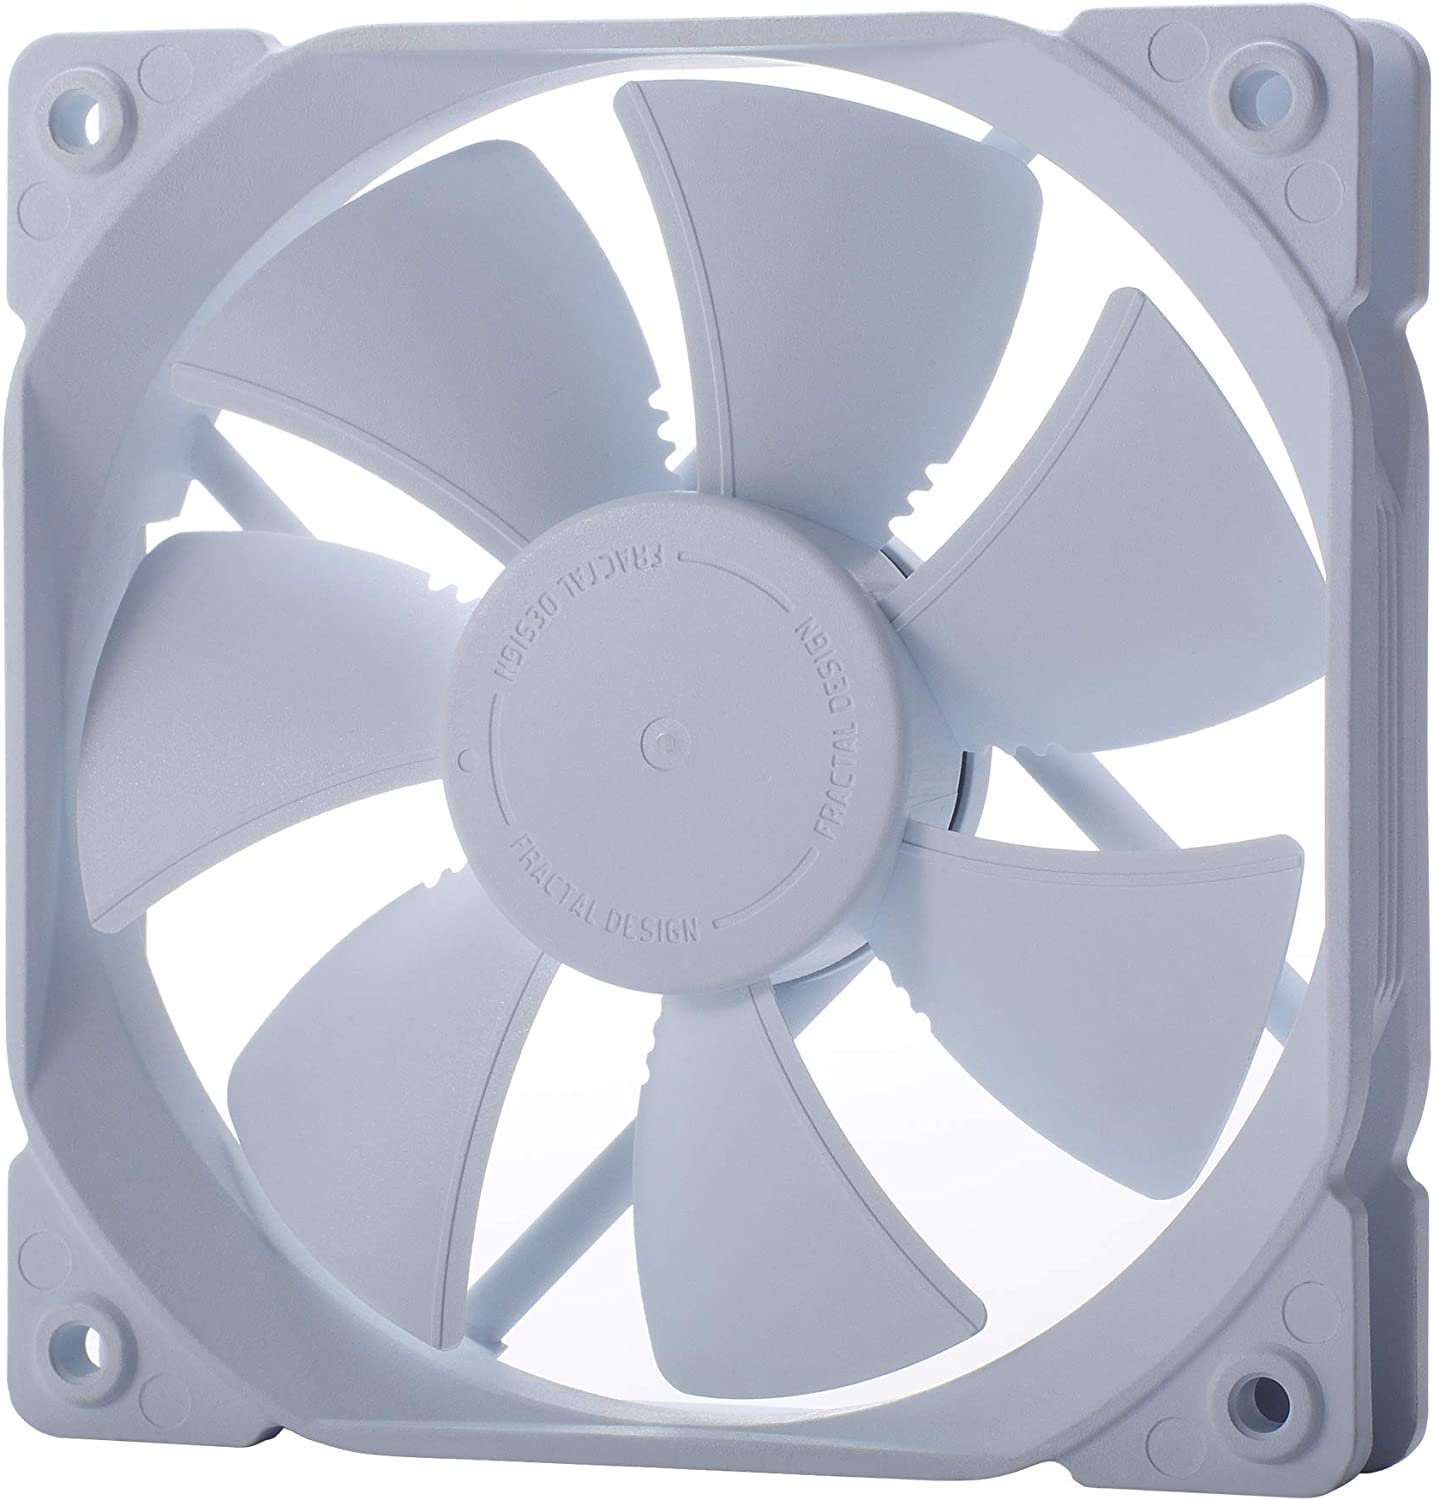 1000RPM Single Trip Wire 140x140x25 mm 12V Aerodynamically Shaped Struts High Airflow Silent Fan Fractal Design Dynamic X2 GP-14 PWM Computer Fan White Hydraulic Fdb Bearings